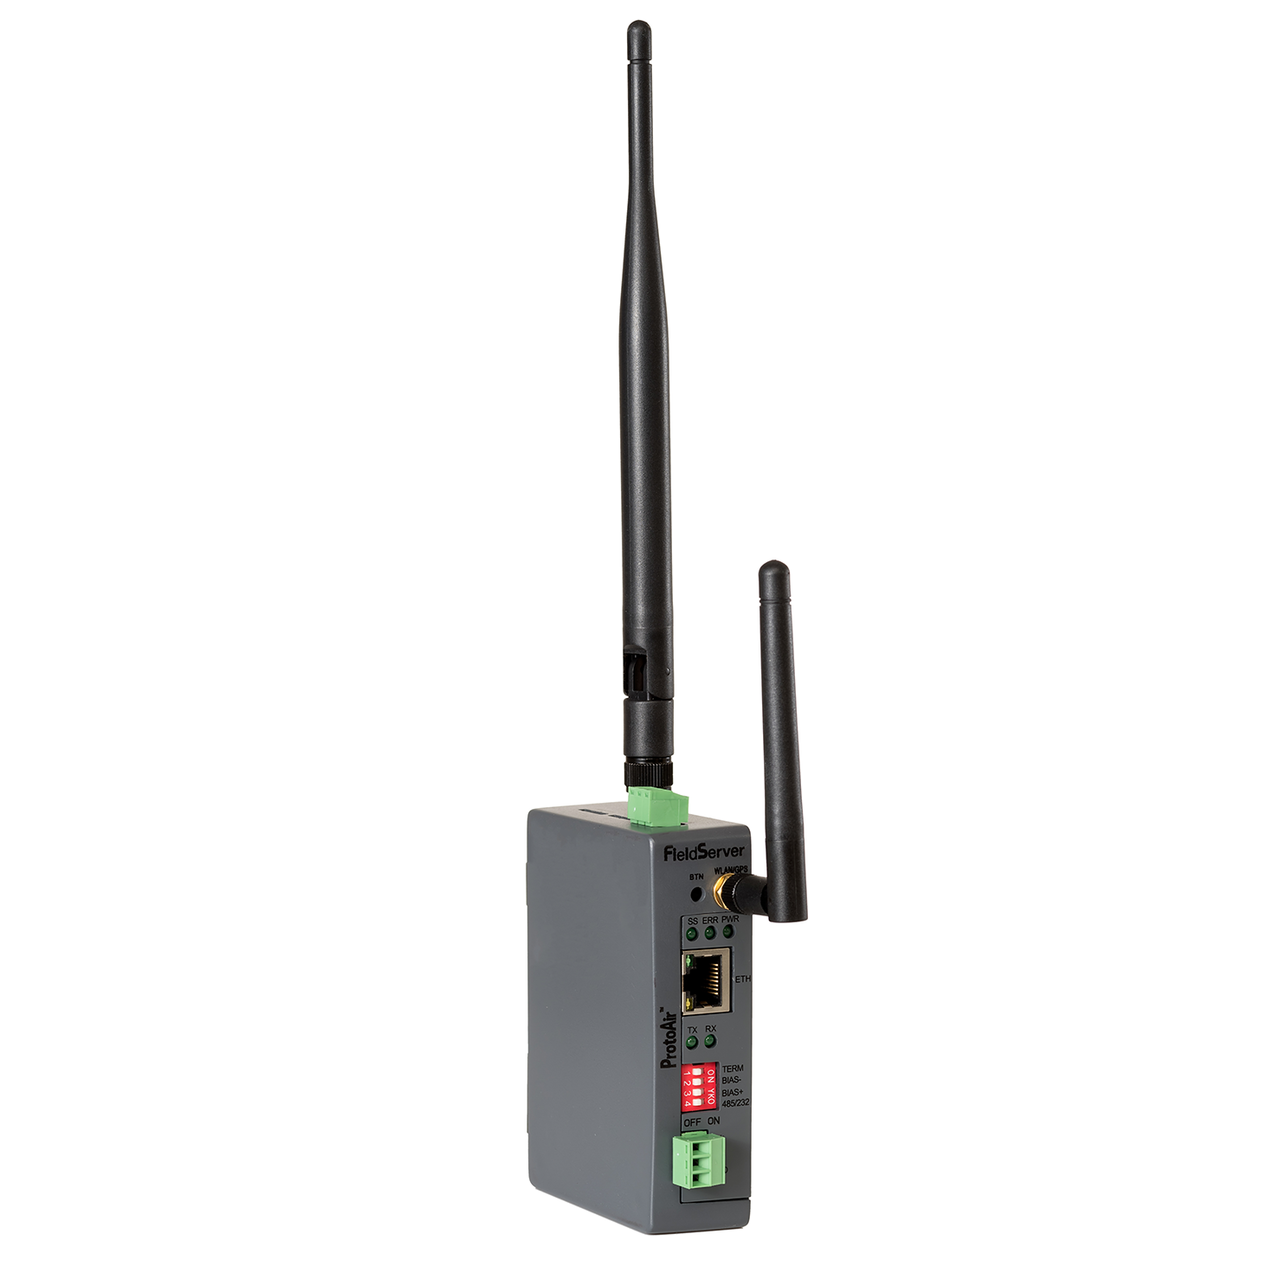 FS-BENG-C (Cellular): Features one RS-485 port, one Ethernet 10/100 port, and supports cellular and Wi-Fi network connection